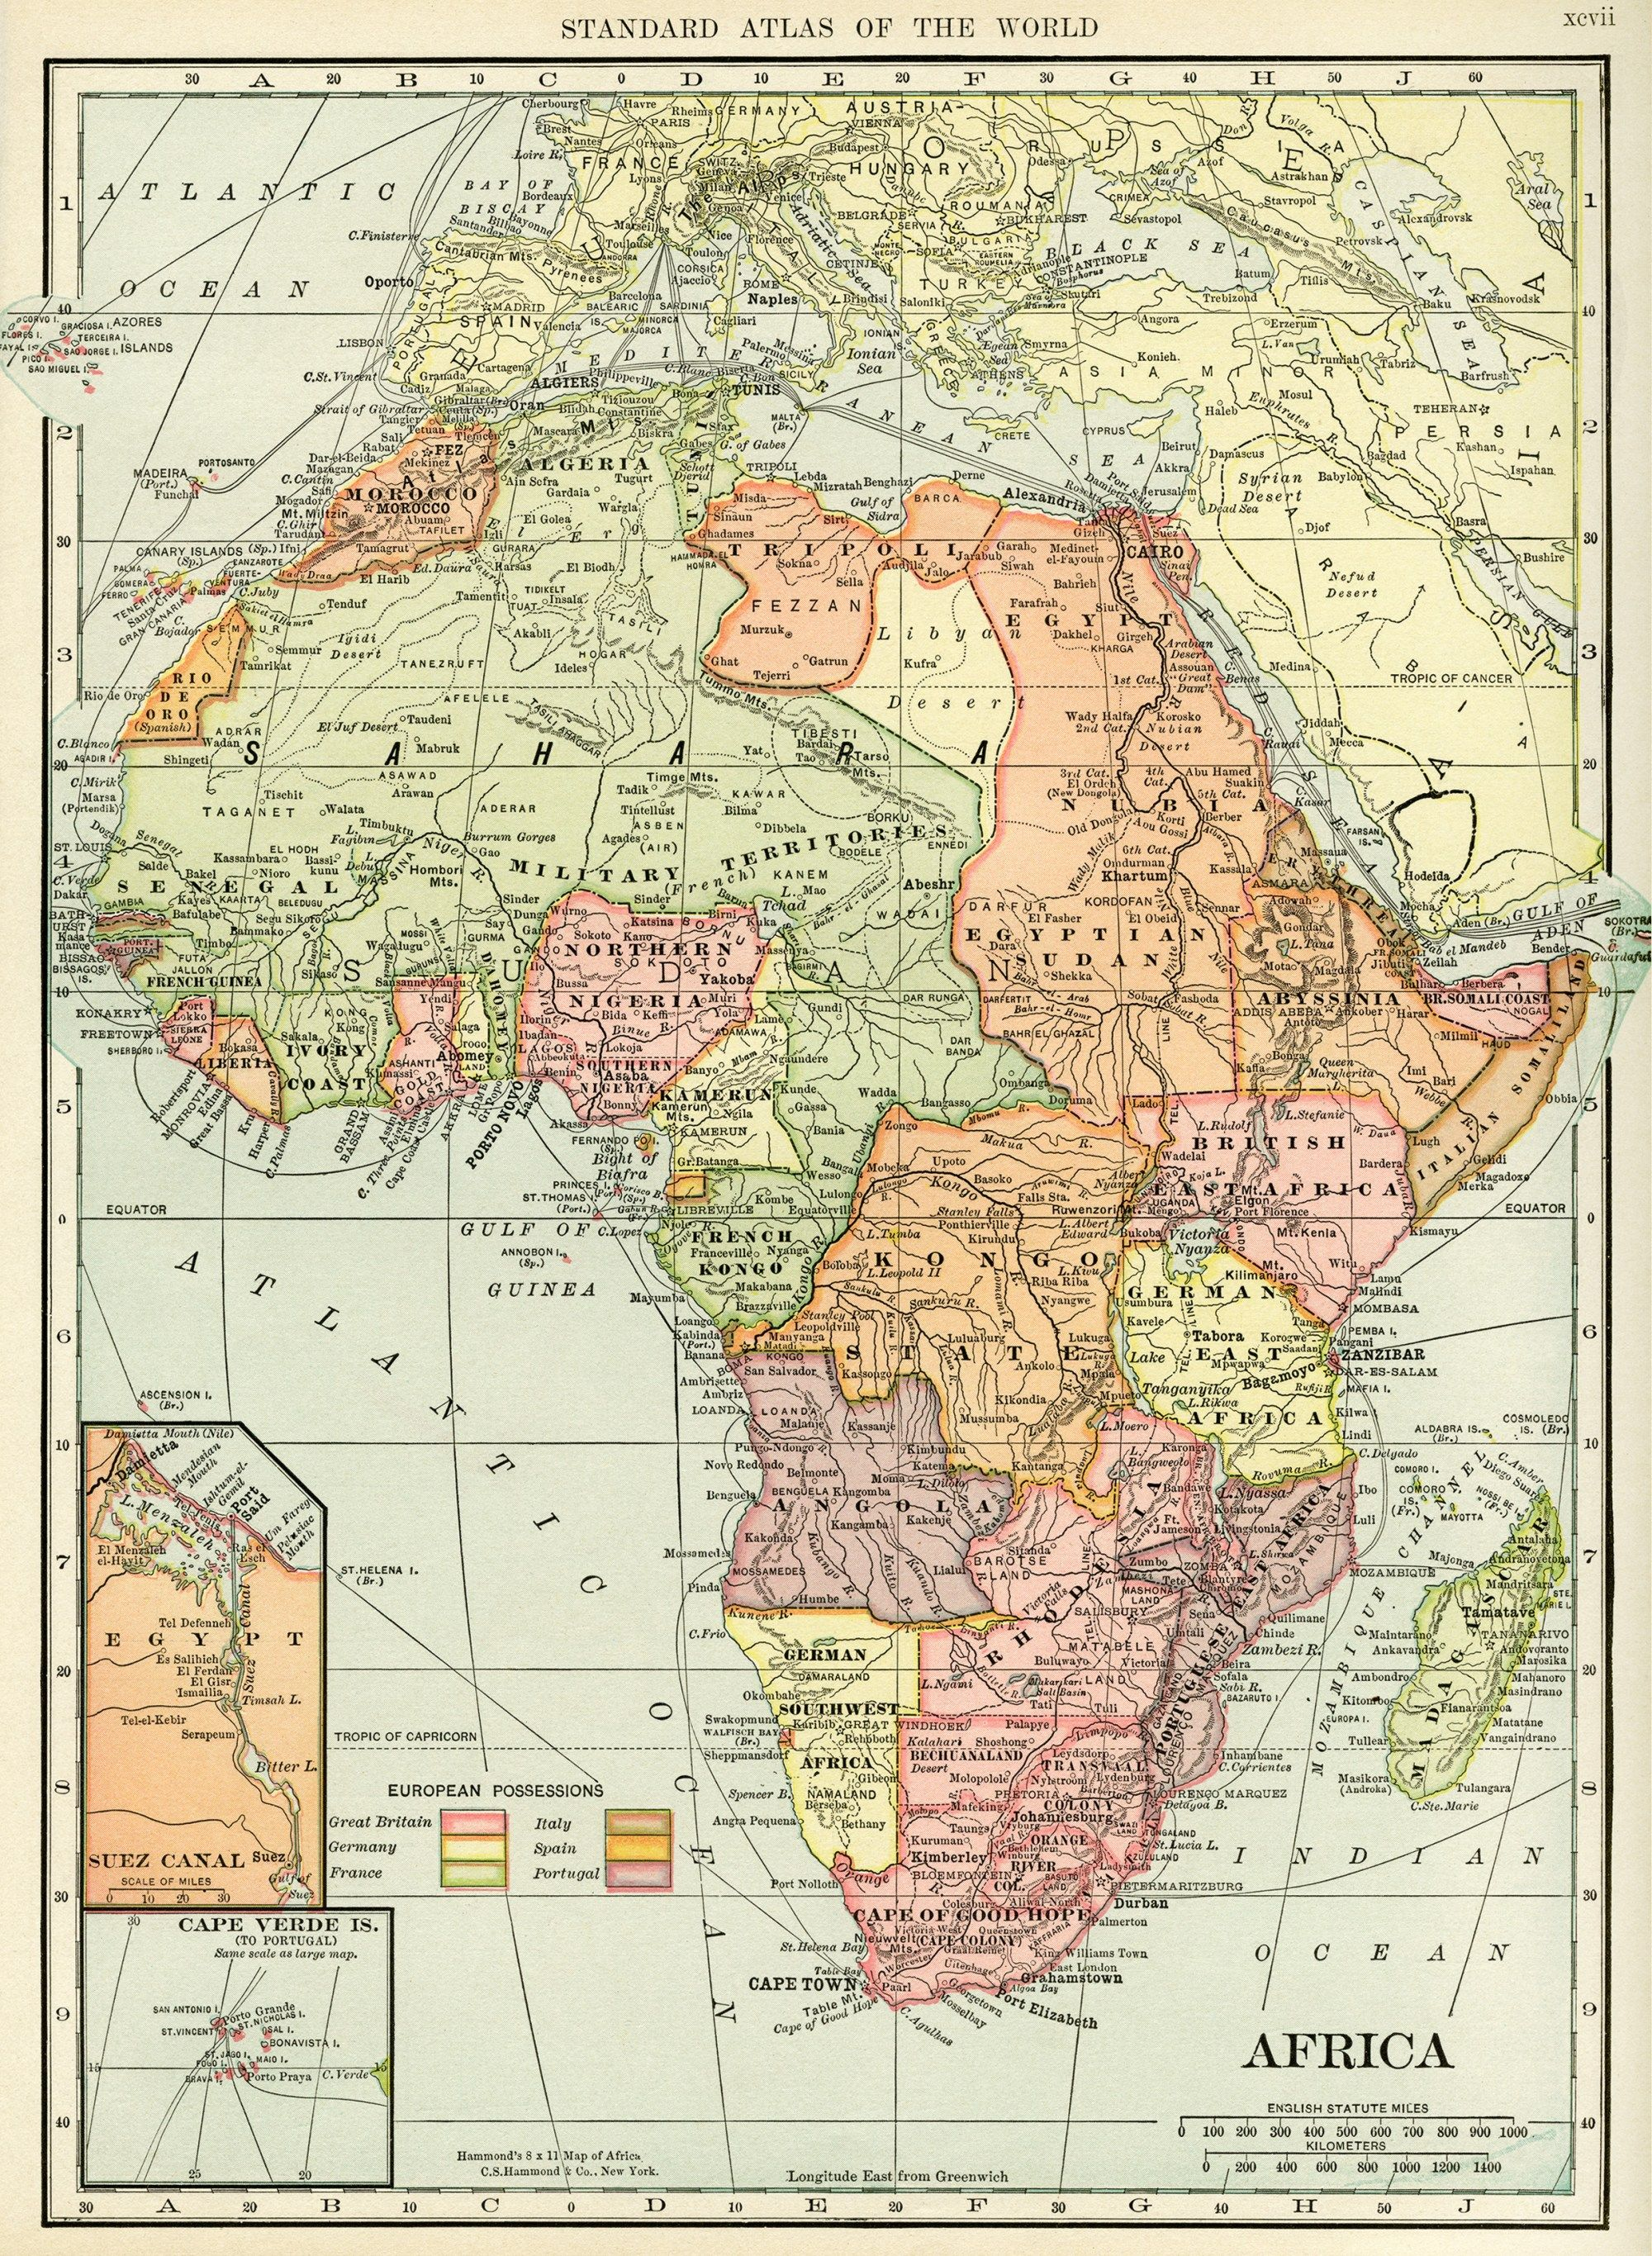 C S Hammond map of Africa antique historical map history